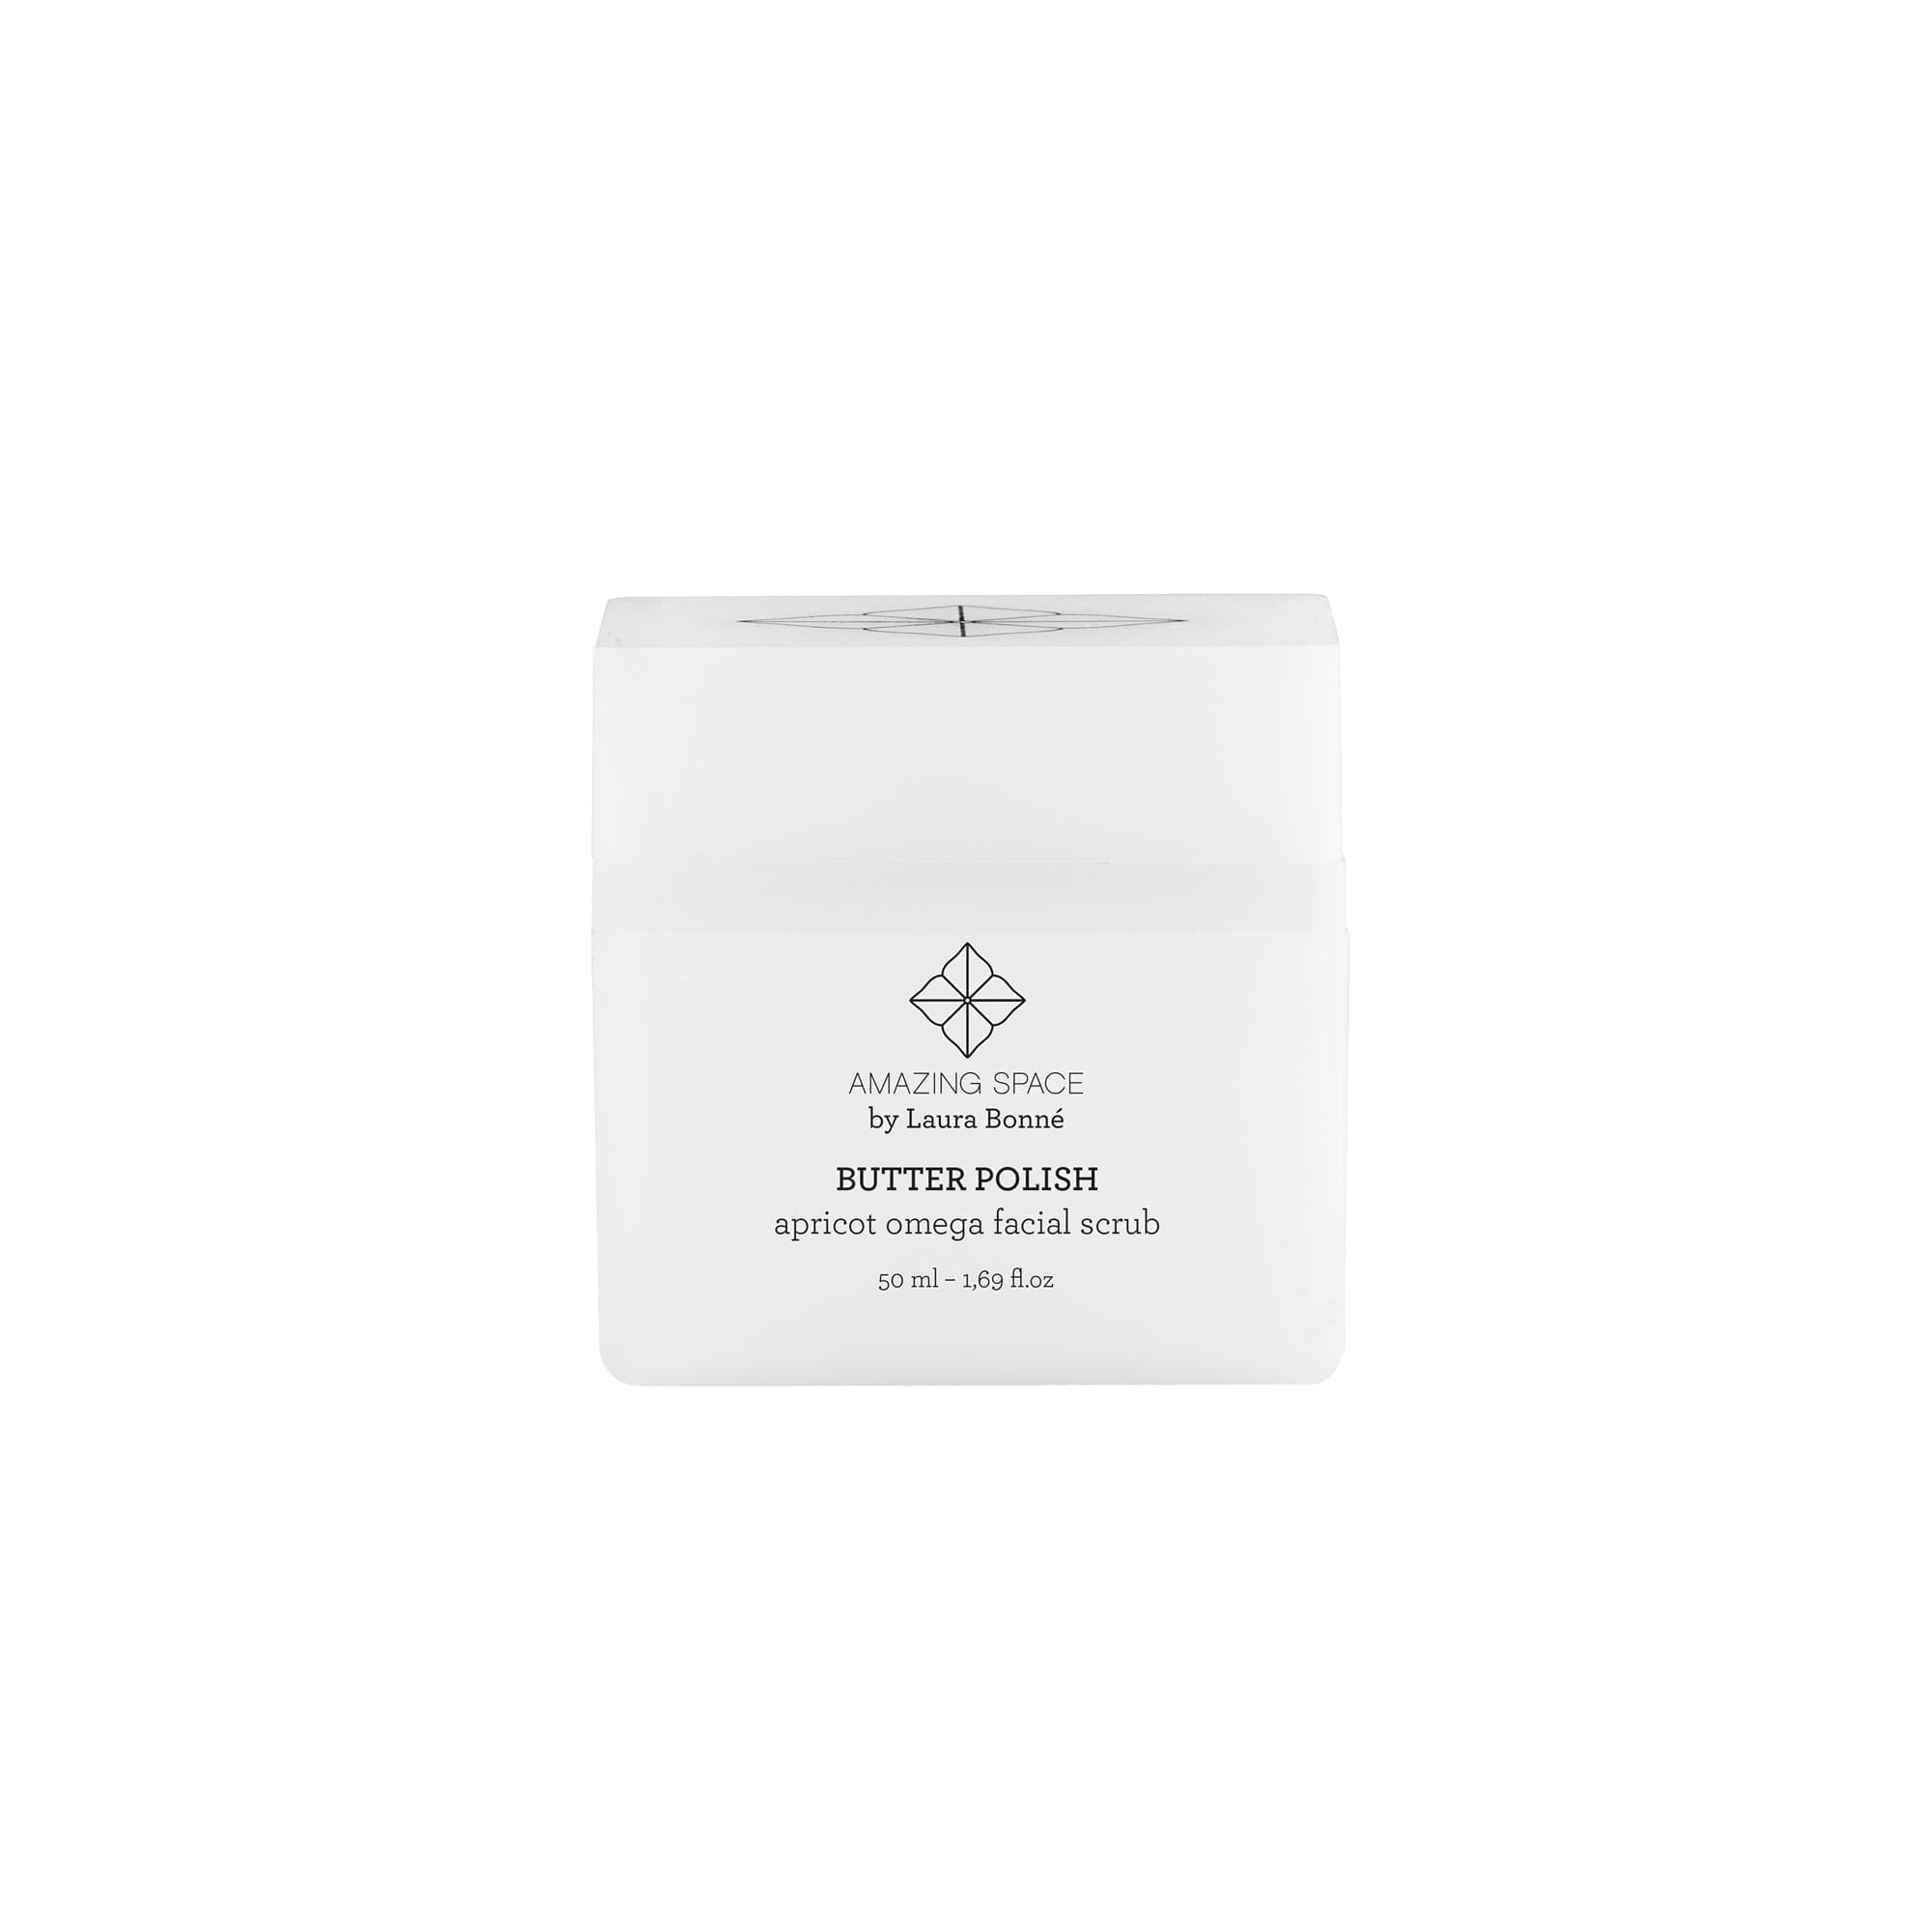 Butter Polish - Apricot Omega Facial Scrub - Amazing Space4